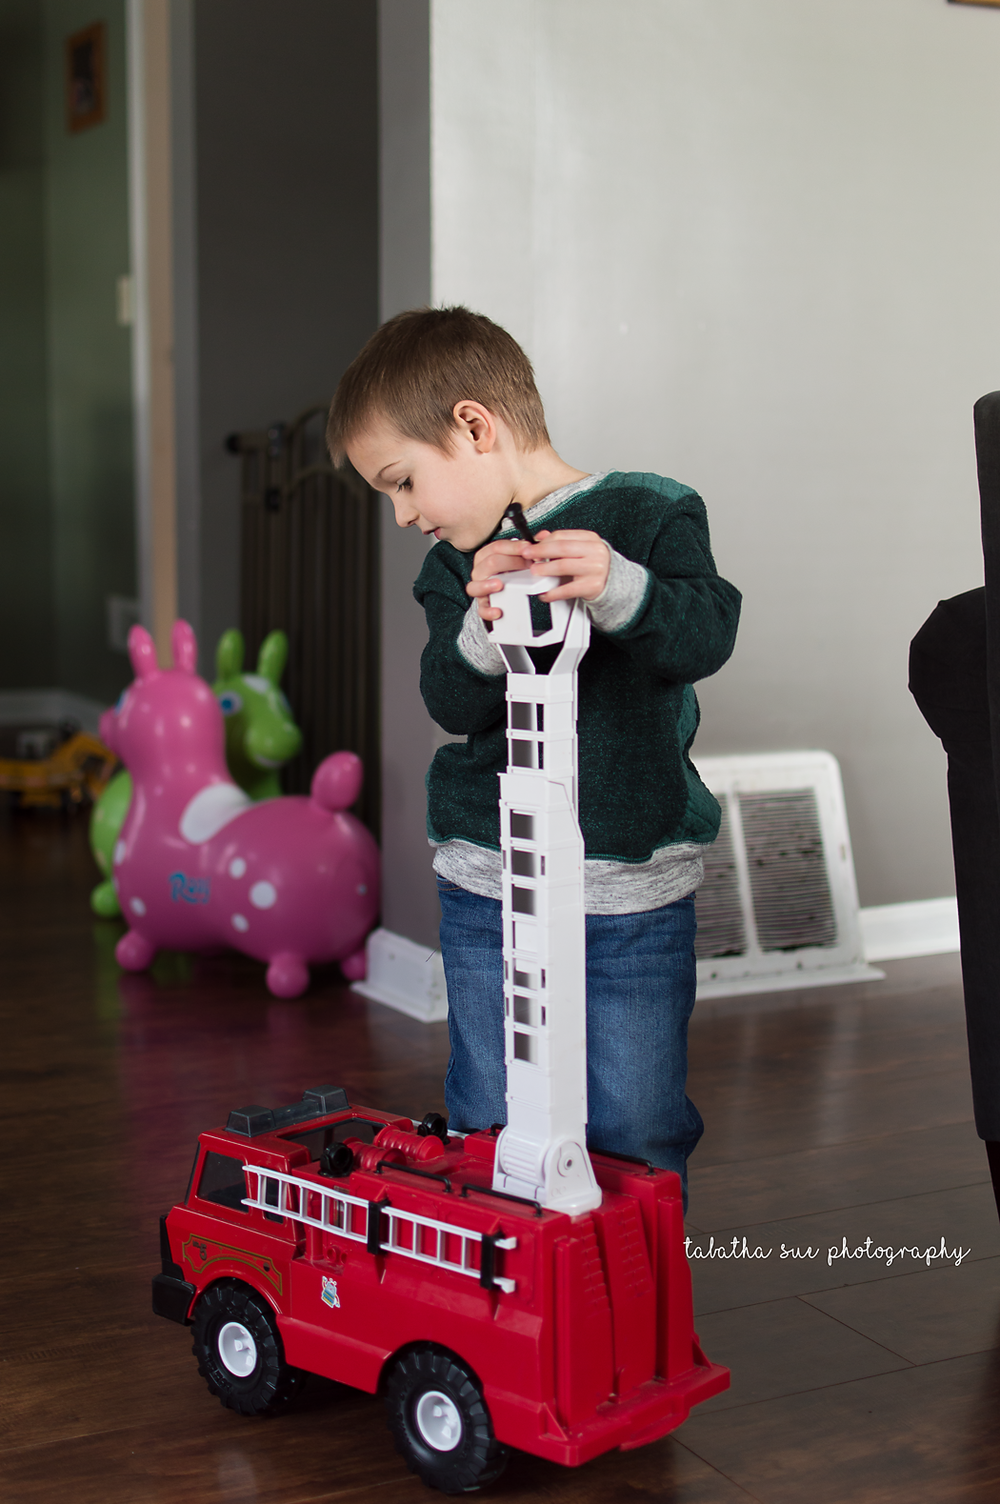 documentary-lifestyle-photographer-near-cleveland-ohio-family-in-cuyahoga-falls-little-boy-playing-with-firetruck-toy.png